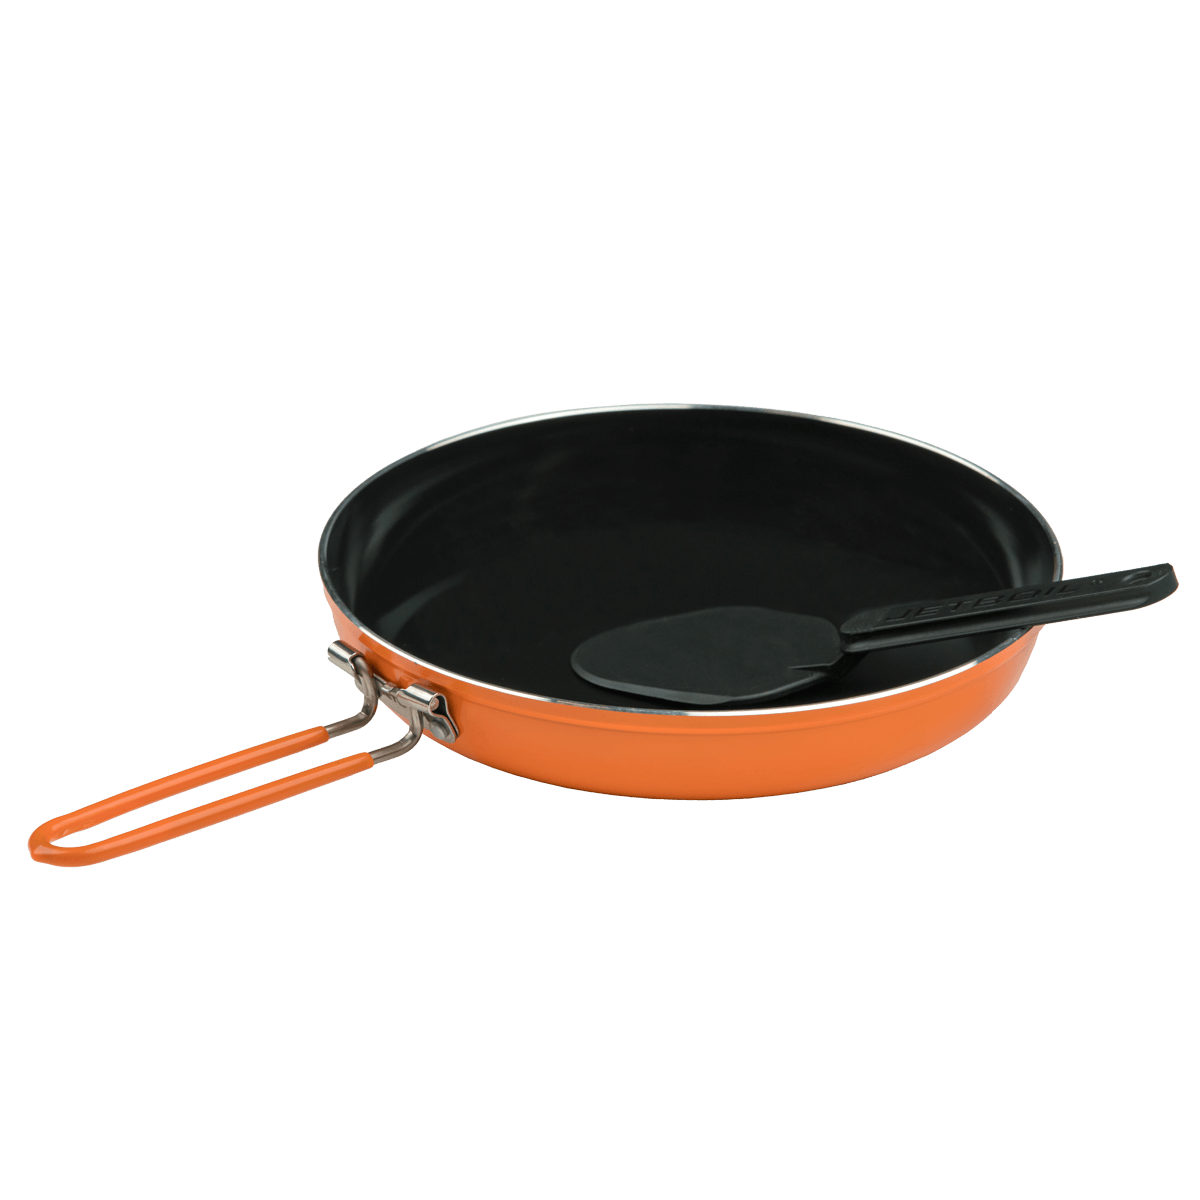 Jetboil 8 Inch Ceramic Summit Skillet with spatula